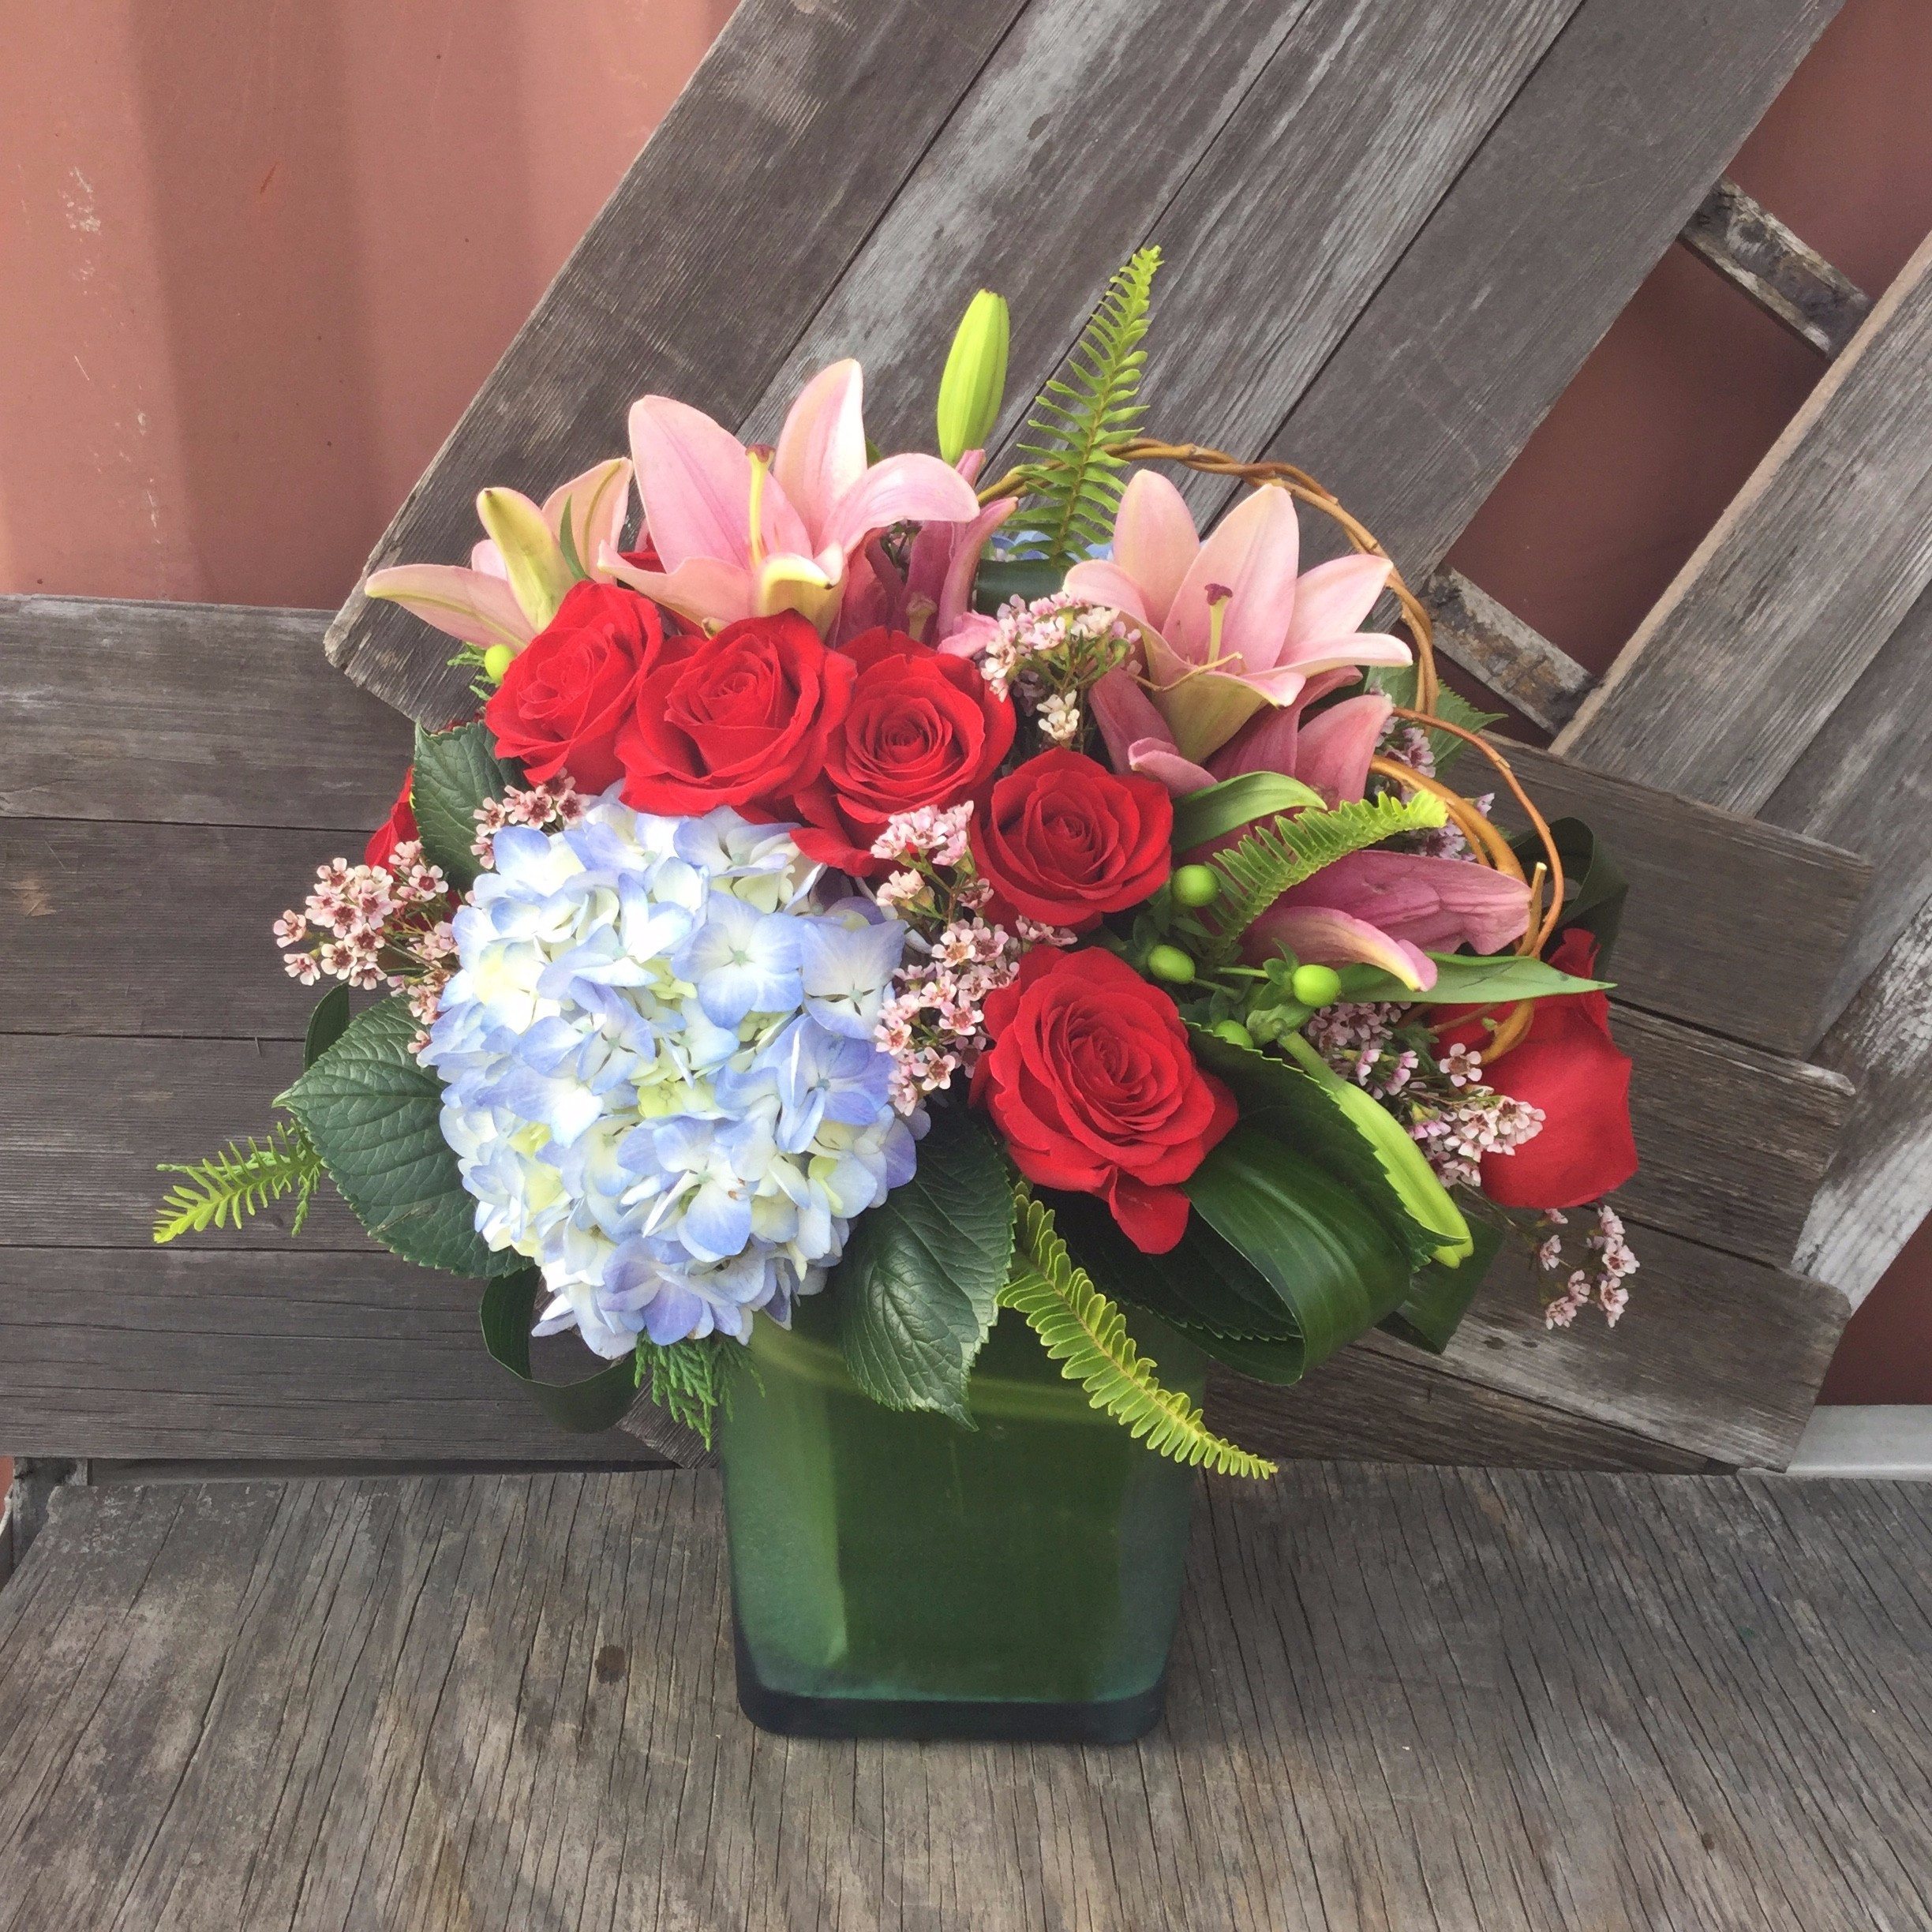 12 Fantastic Headstone Vase Flower Arrangements